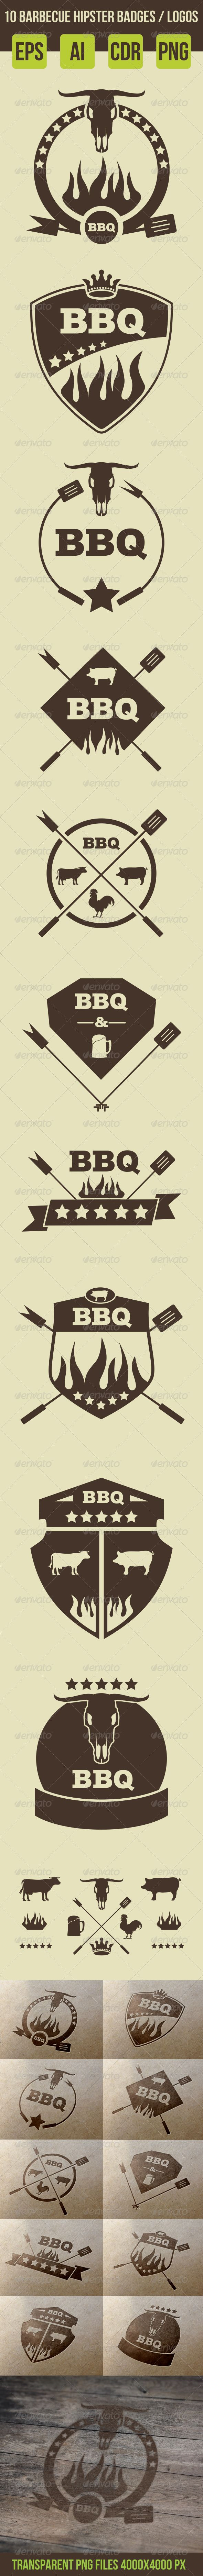 10 Barbeque Hipster Vector Emblems Vol.2  For download - http://graphicriver.net/item/10-barbeque-hipster-vector-emblems-vol2-/8063661?WT.ac=portfolioWT.z_author=ragerabbit